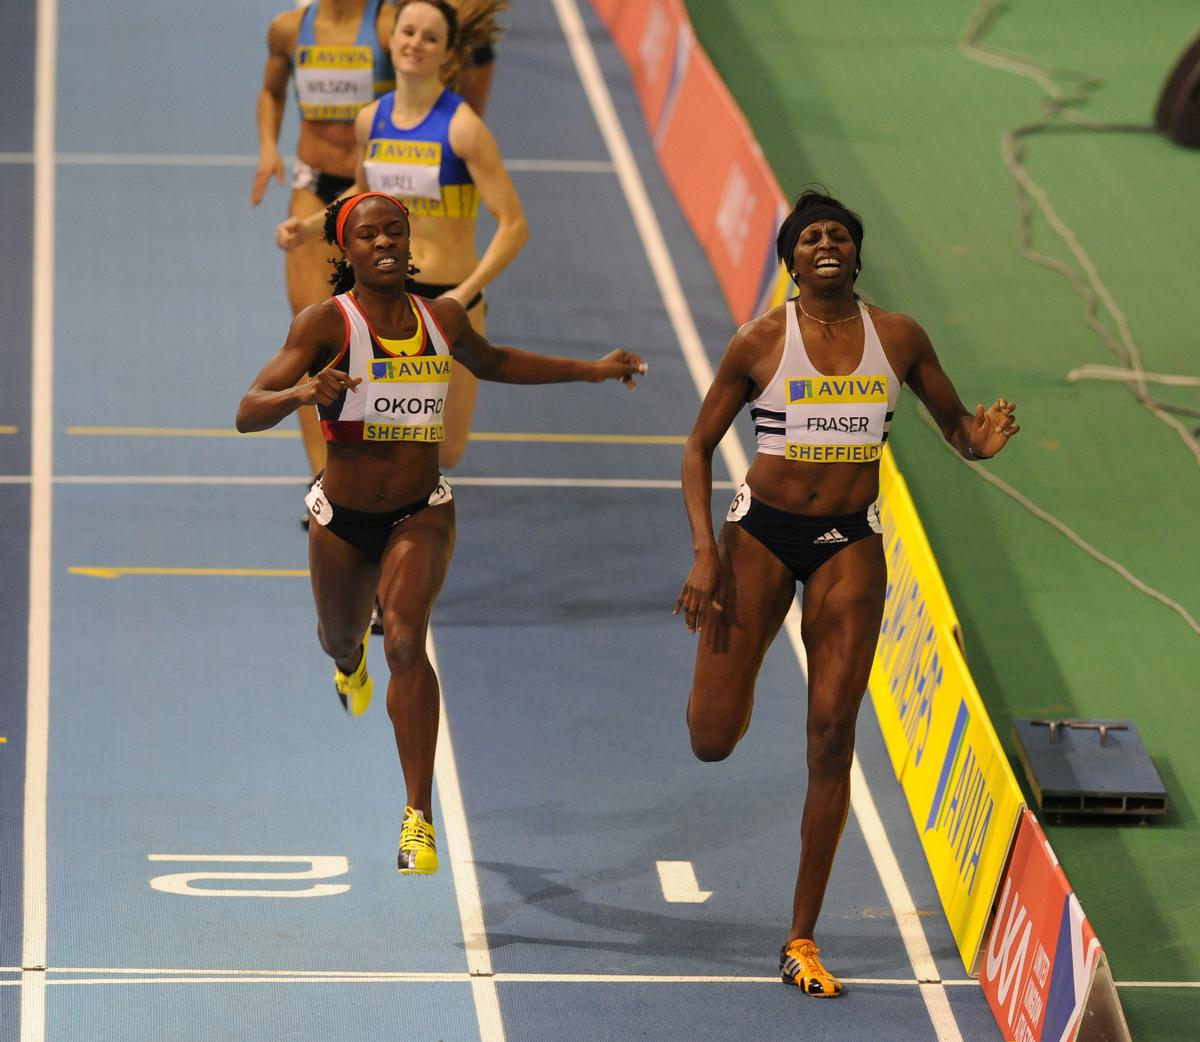 New WST trustee Donna Fraser, pictured right, winning the women's 400m final for GB from Marilyn Okoro in 2009 / Tony Marshall/EMPICS Sport